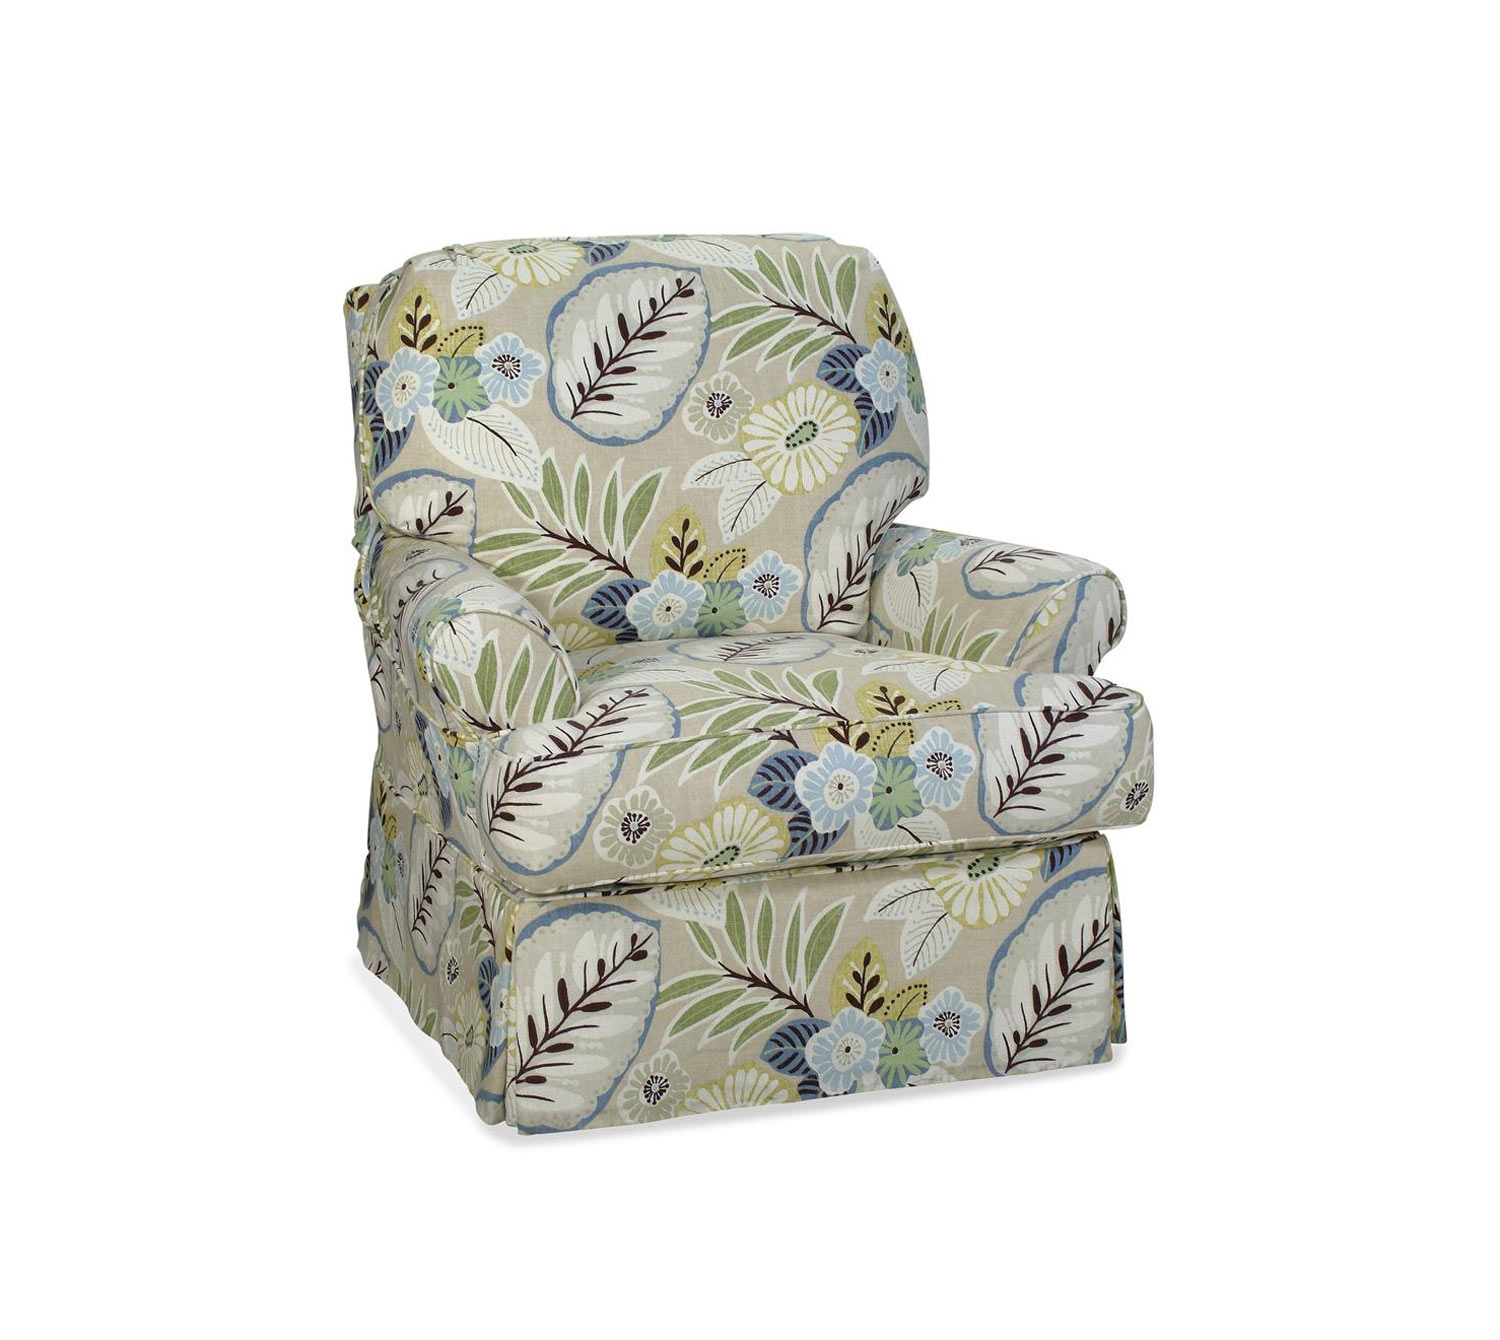 Chelsea Home Sydney Accent Glider - Tracey Beachcomber